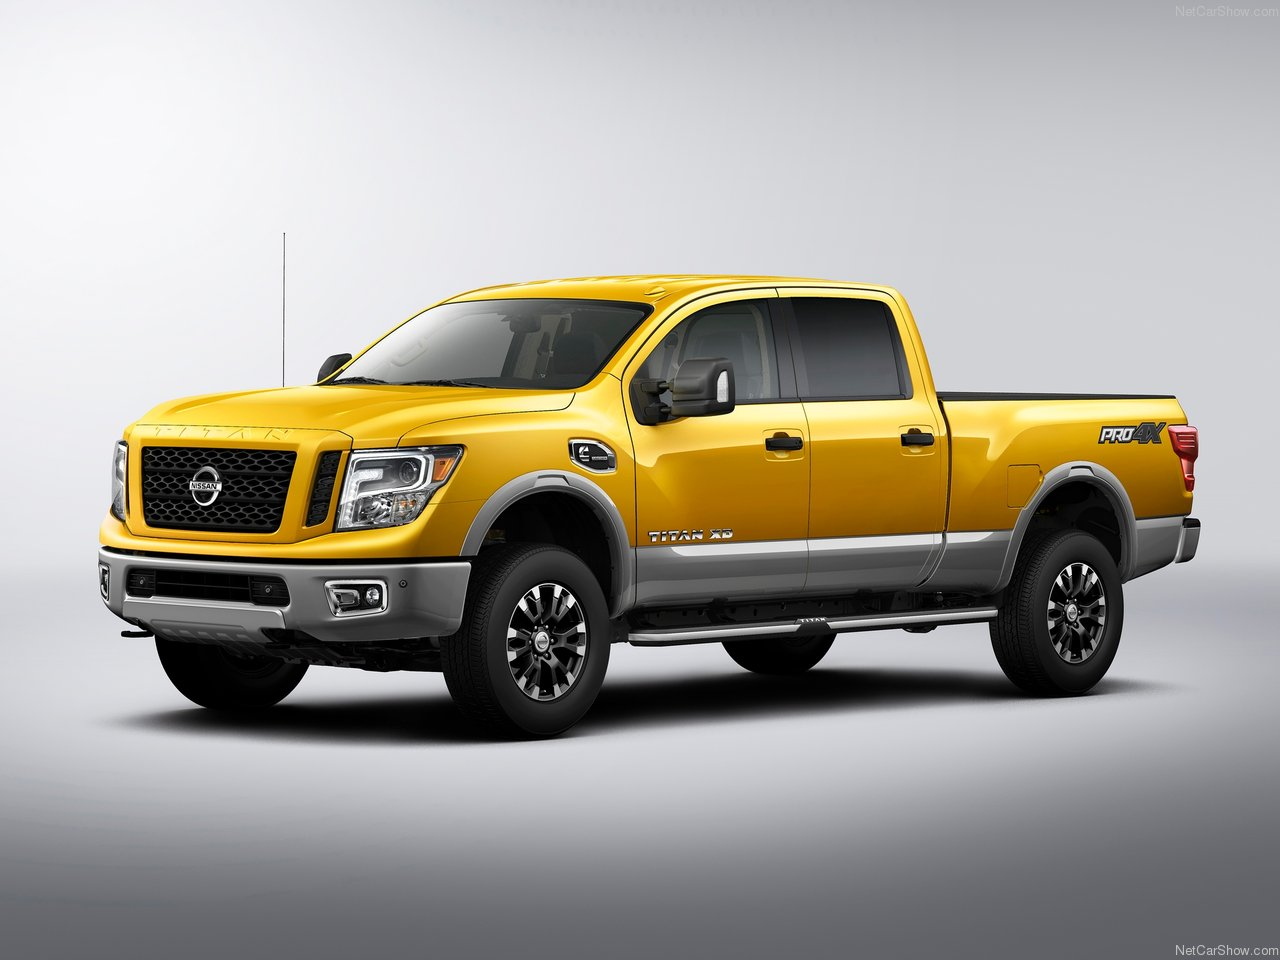 Nissan Titan XD photo 141349